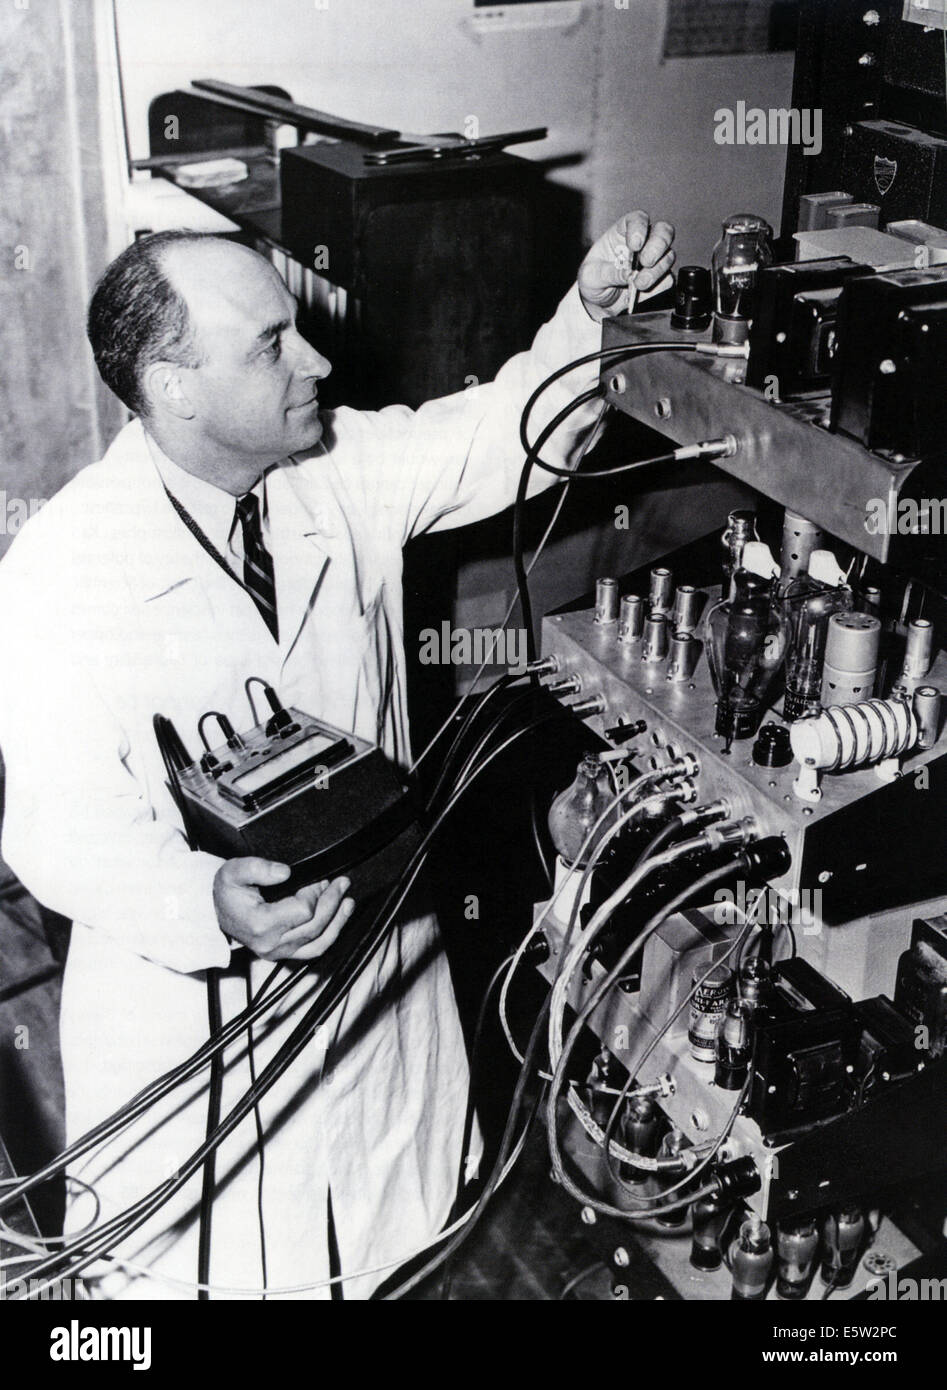 ENRICO FERMI (1901-1954) Italian physicist in 1948 while working on he particle accelerator at Chicago University - Stock Image